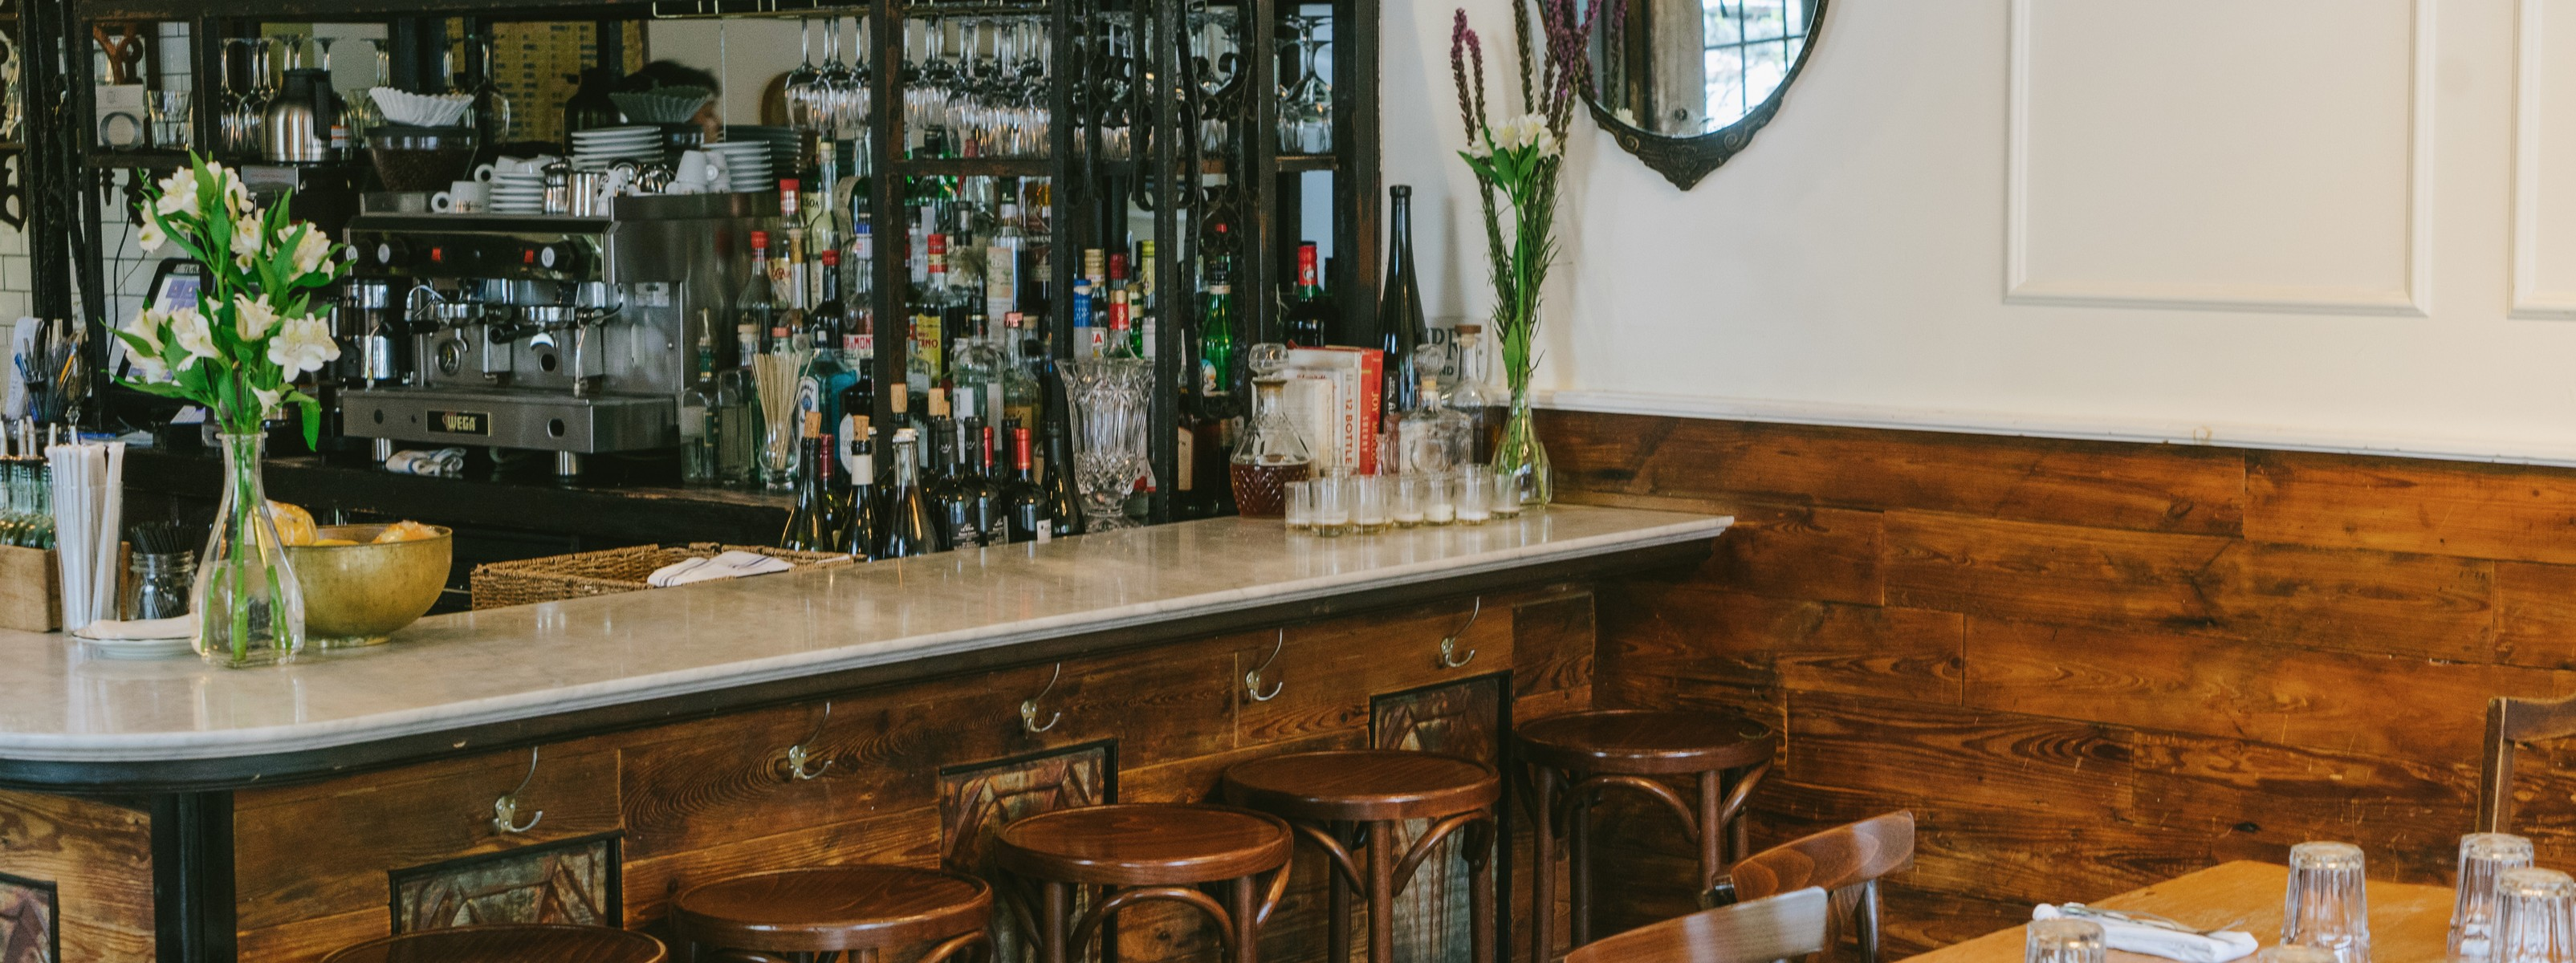 Where To Eat In Fort Greene Clinton Hill New York The Infatuation